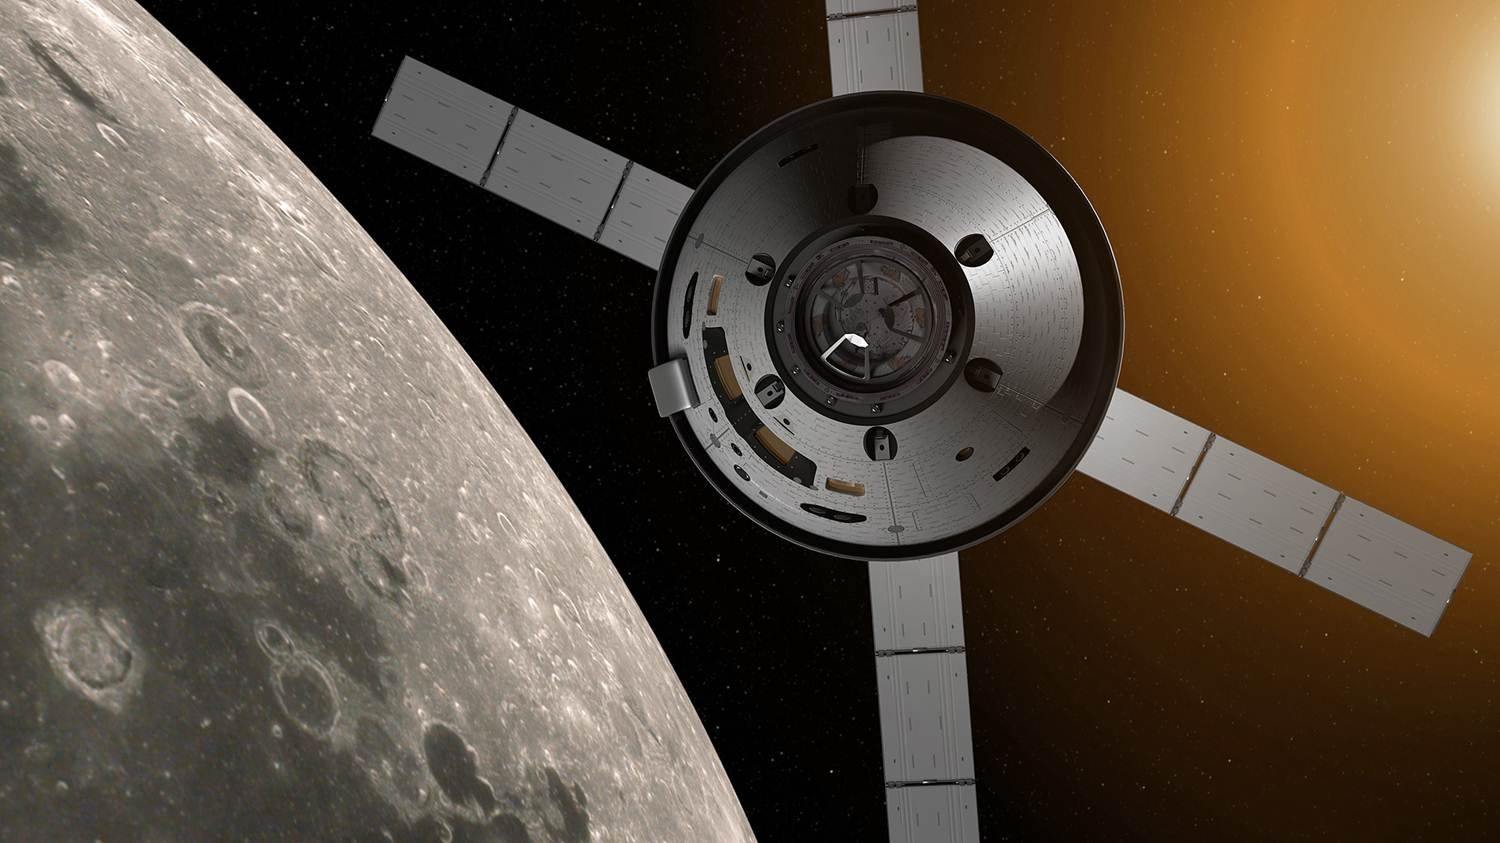 Artist's concept of the Orion spacecraft with the European service module's distinctive X-wing solar panels. Credit: NASA